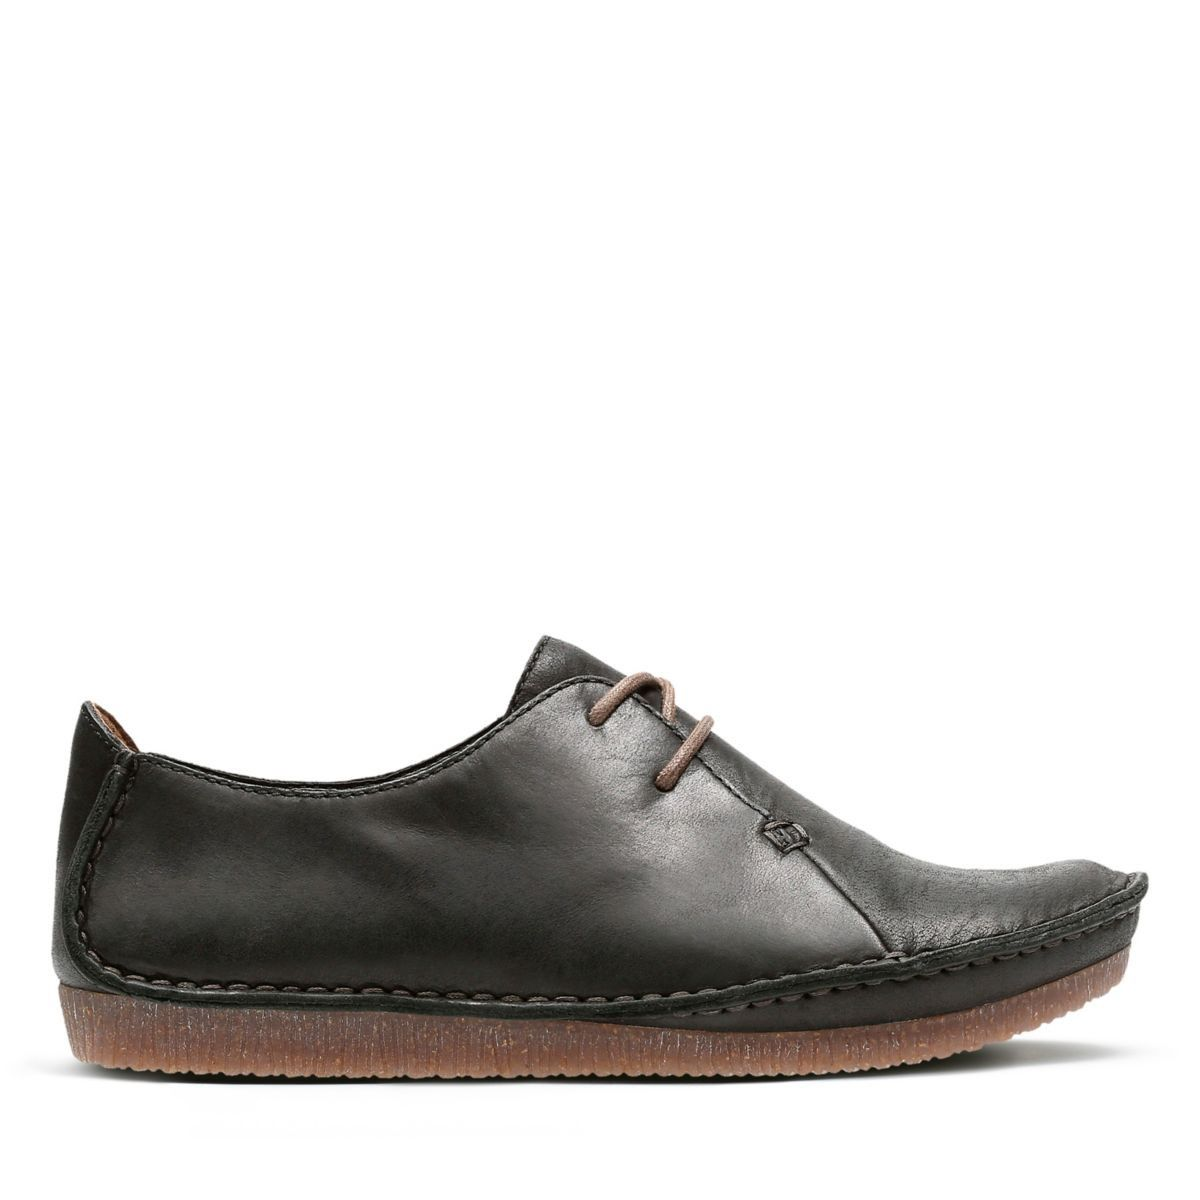 4c1601341b3a20 Janey Mae - Womens Shoes - Black Leather by Clarks in 2018 ...